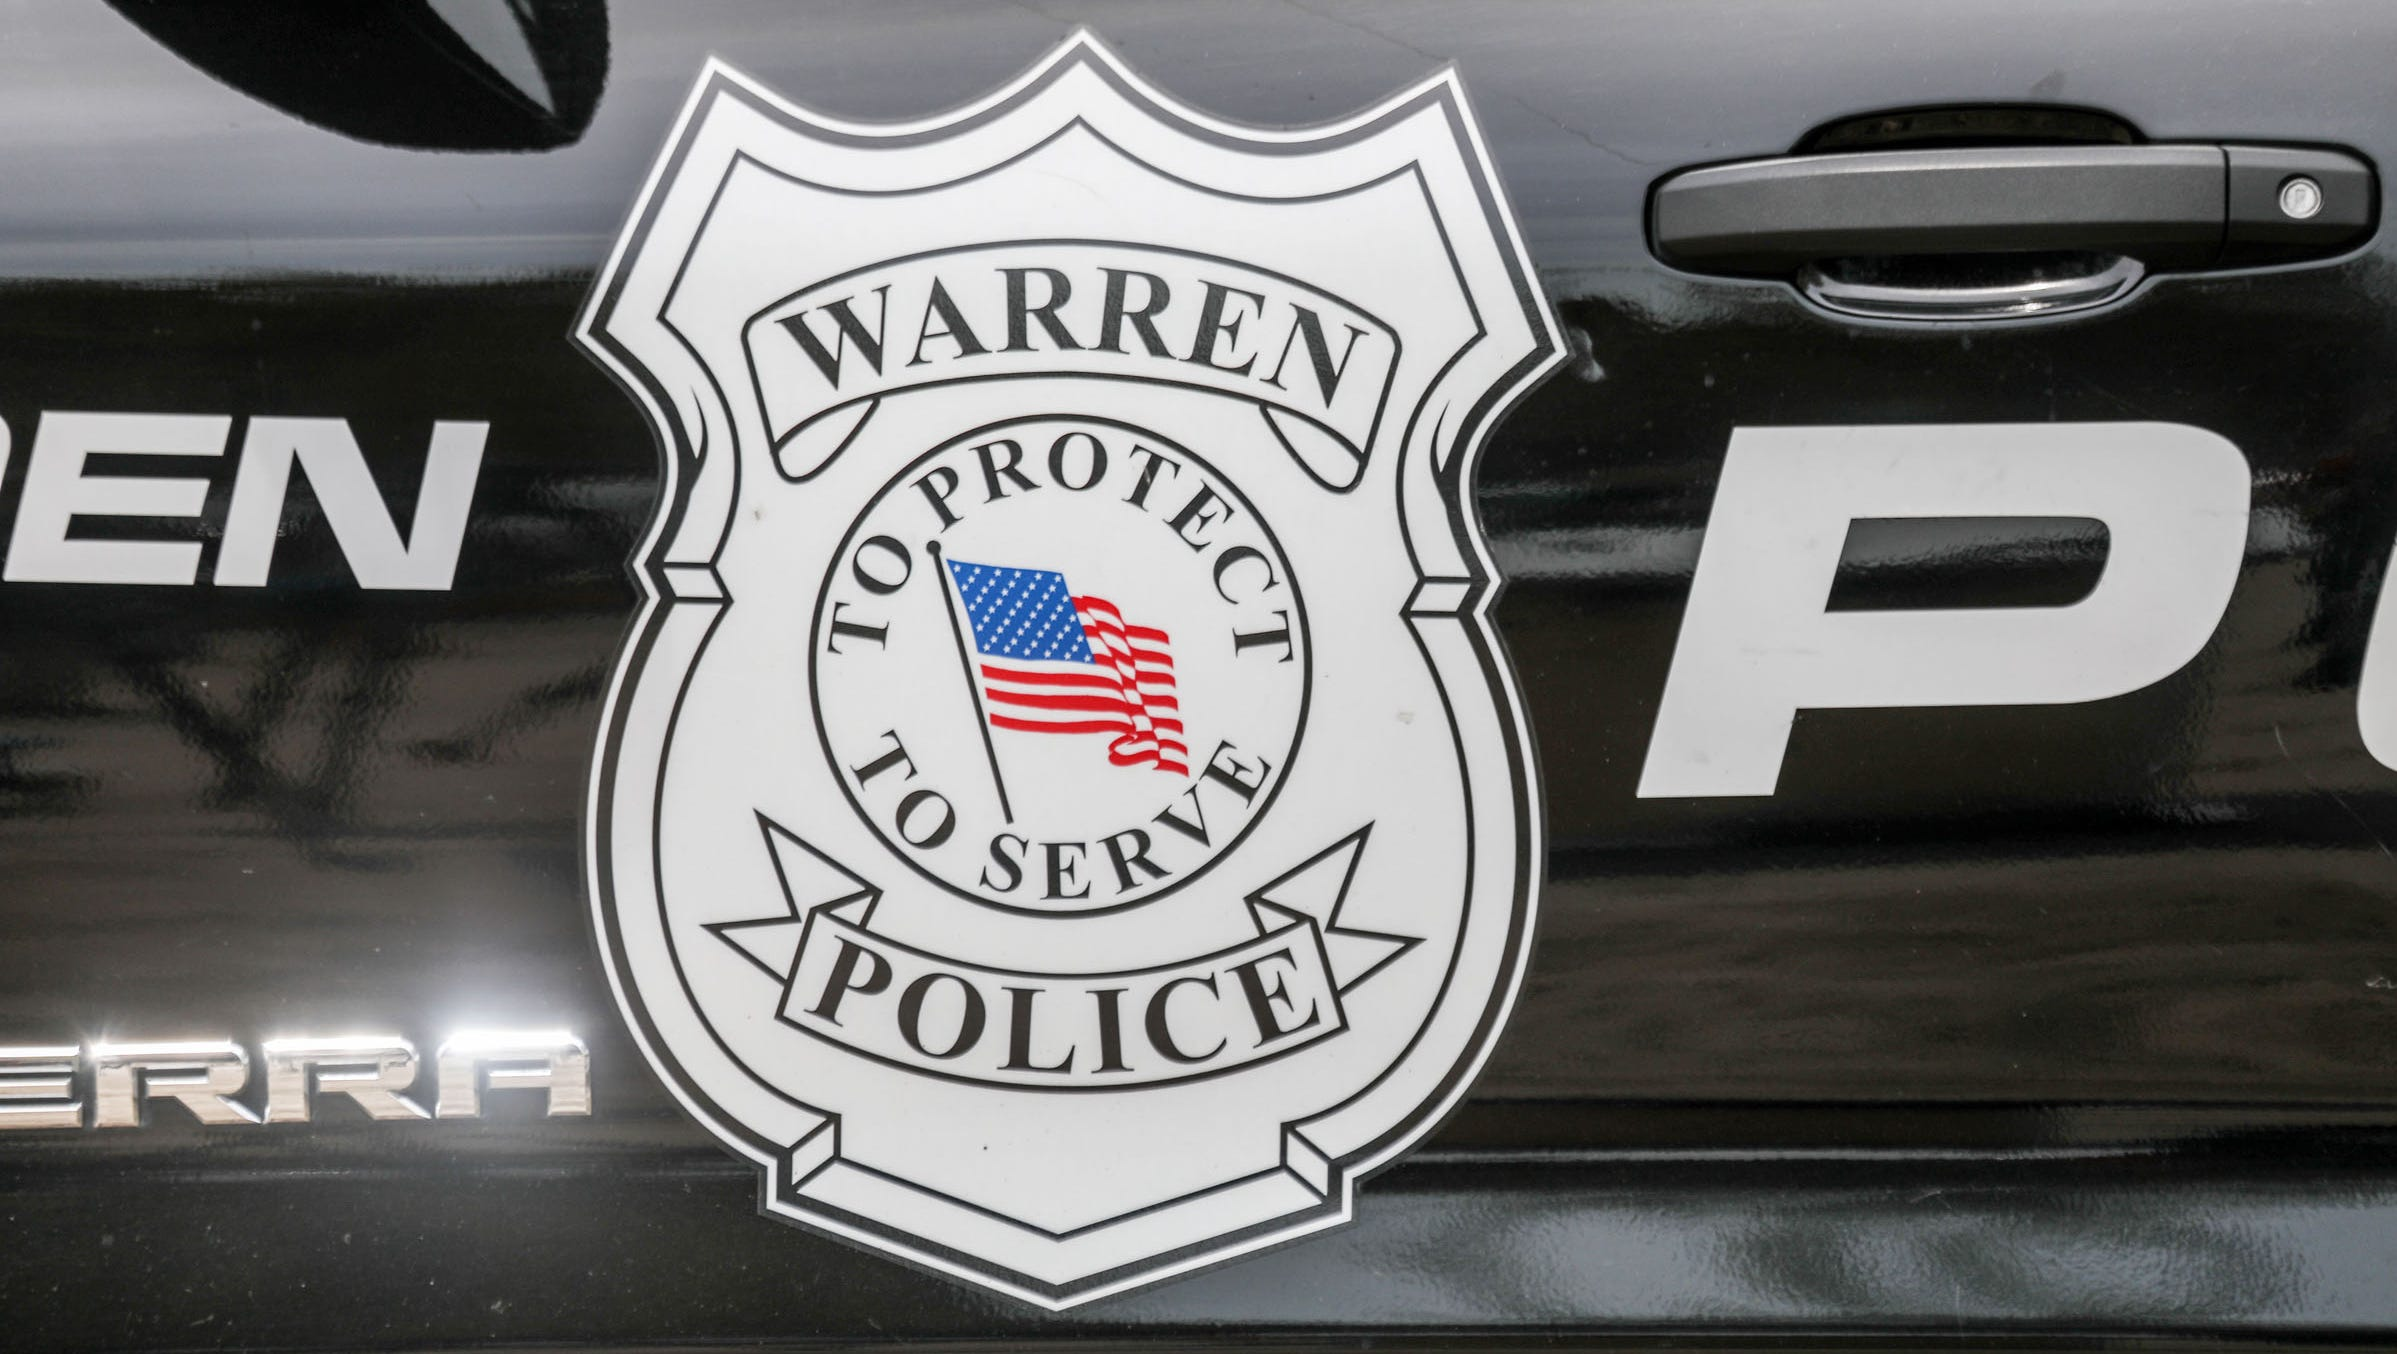 Detroit Police Officer Fired for Racist Comments on Facebook